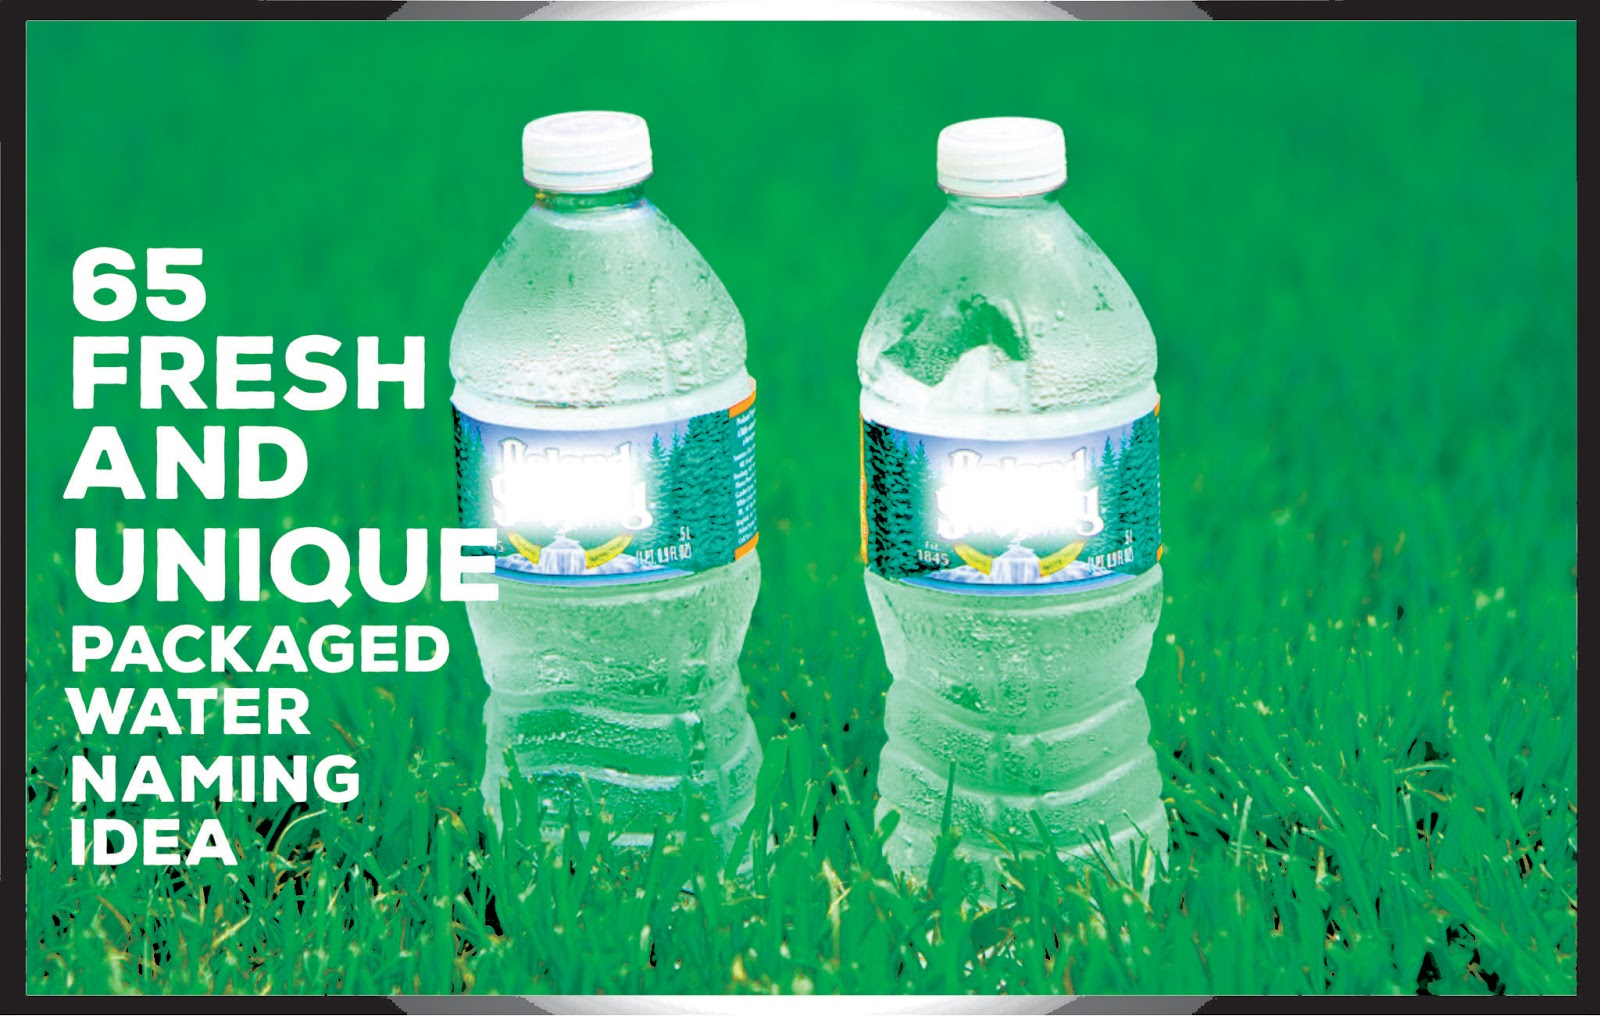 65 Good Packaged Bottled Water Company Names